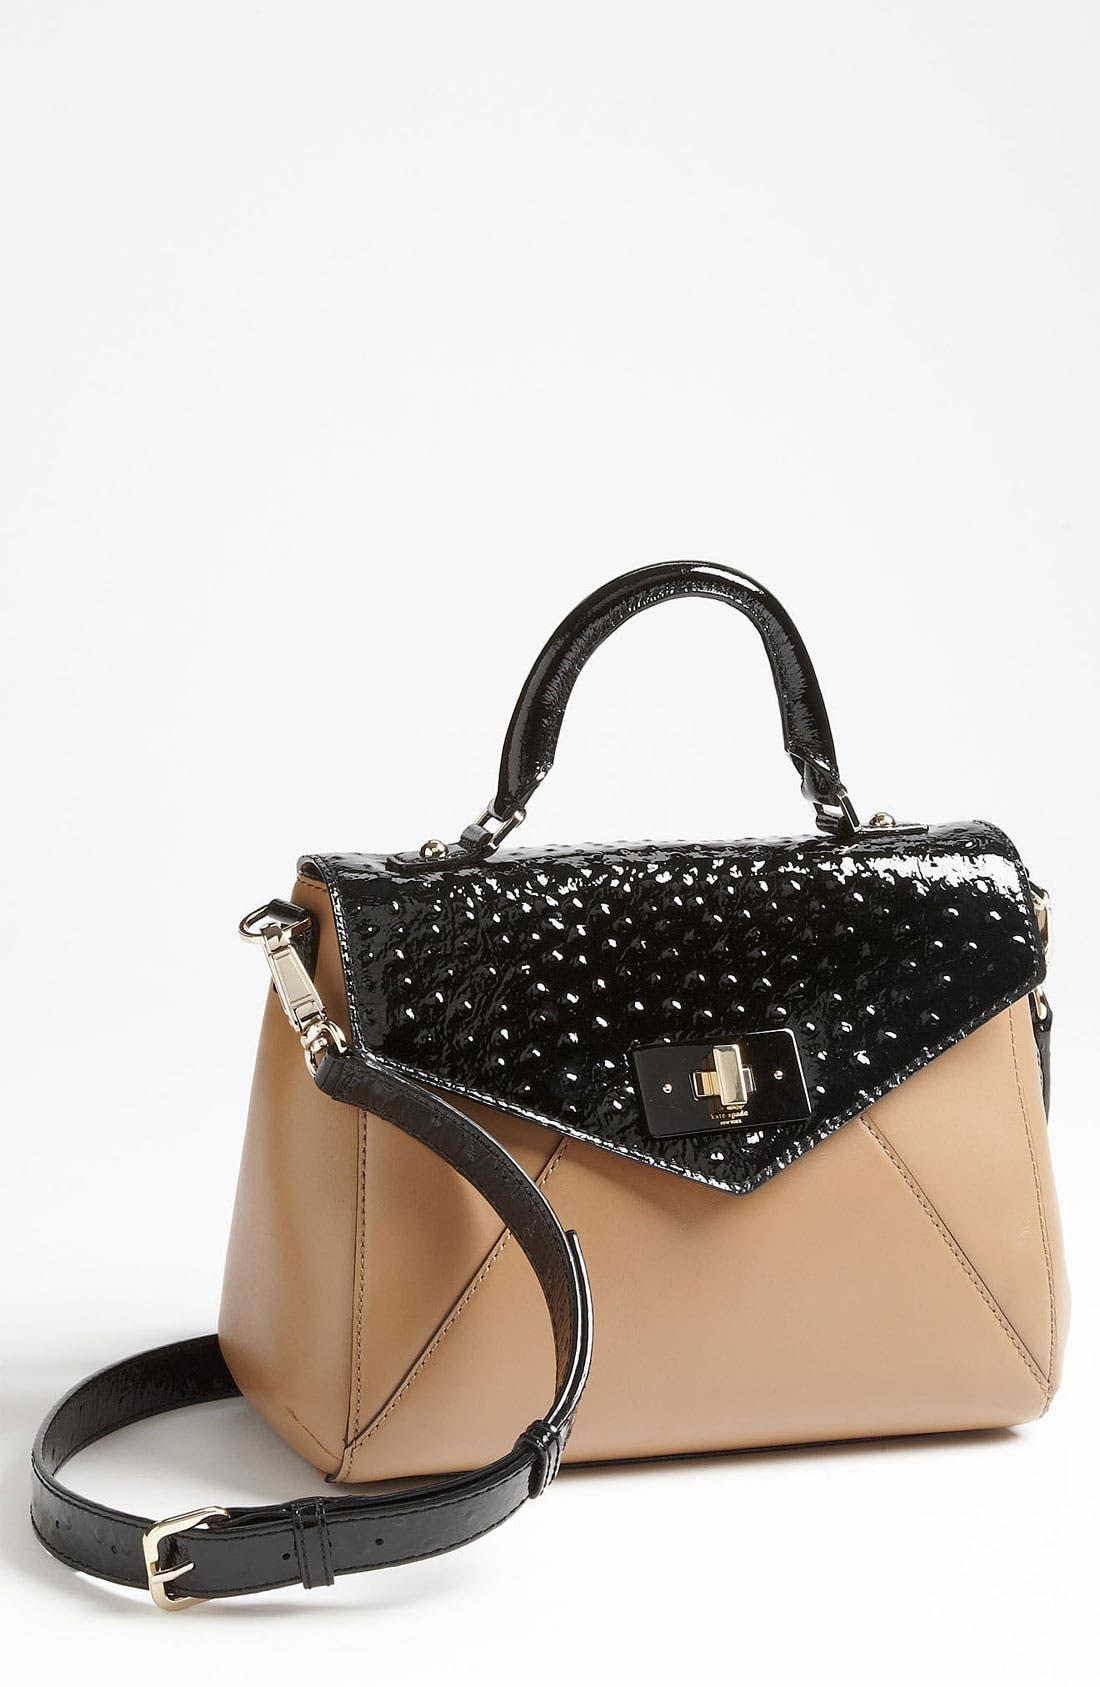 Main Image - kate spade new york 'post street - little nadine' satchel